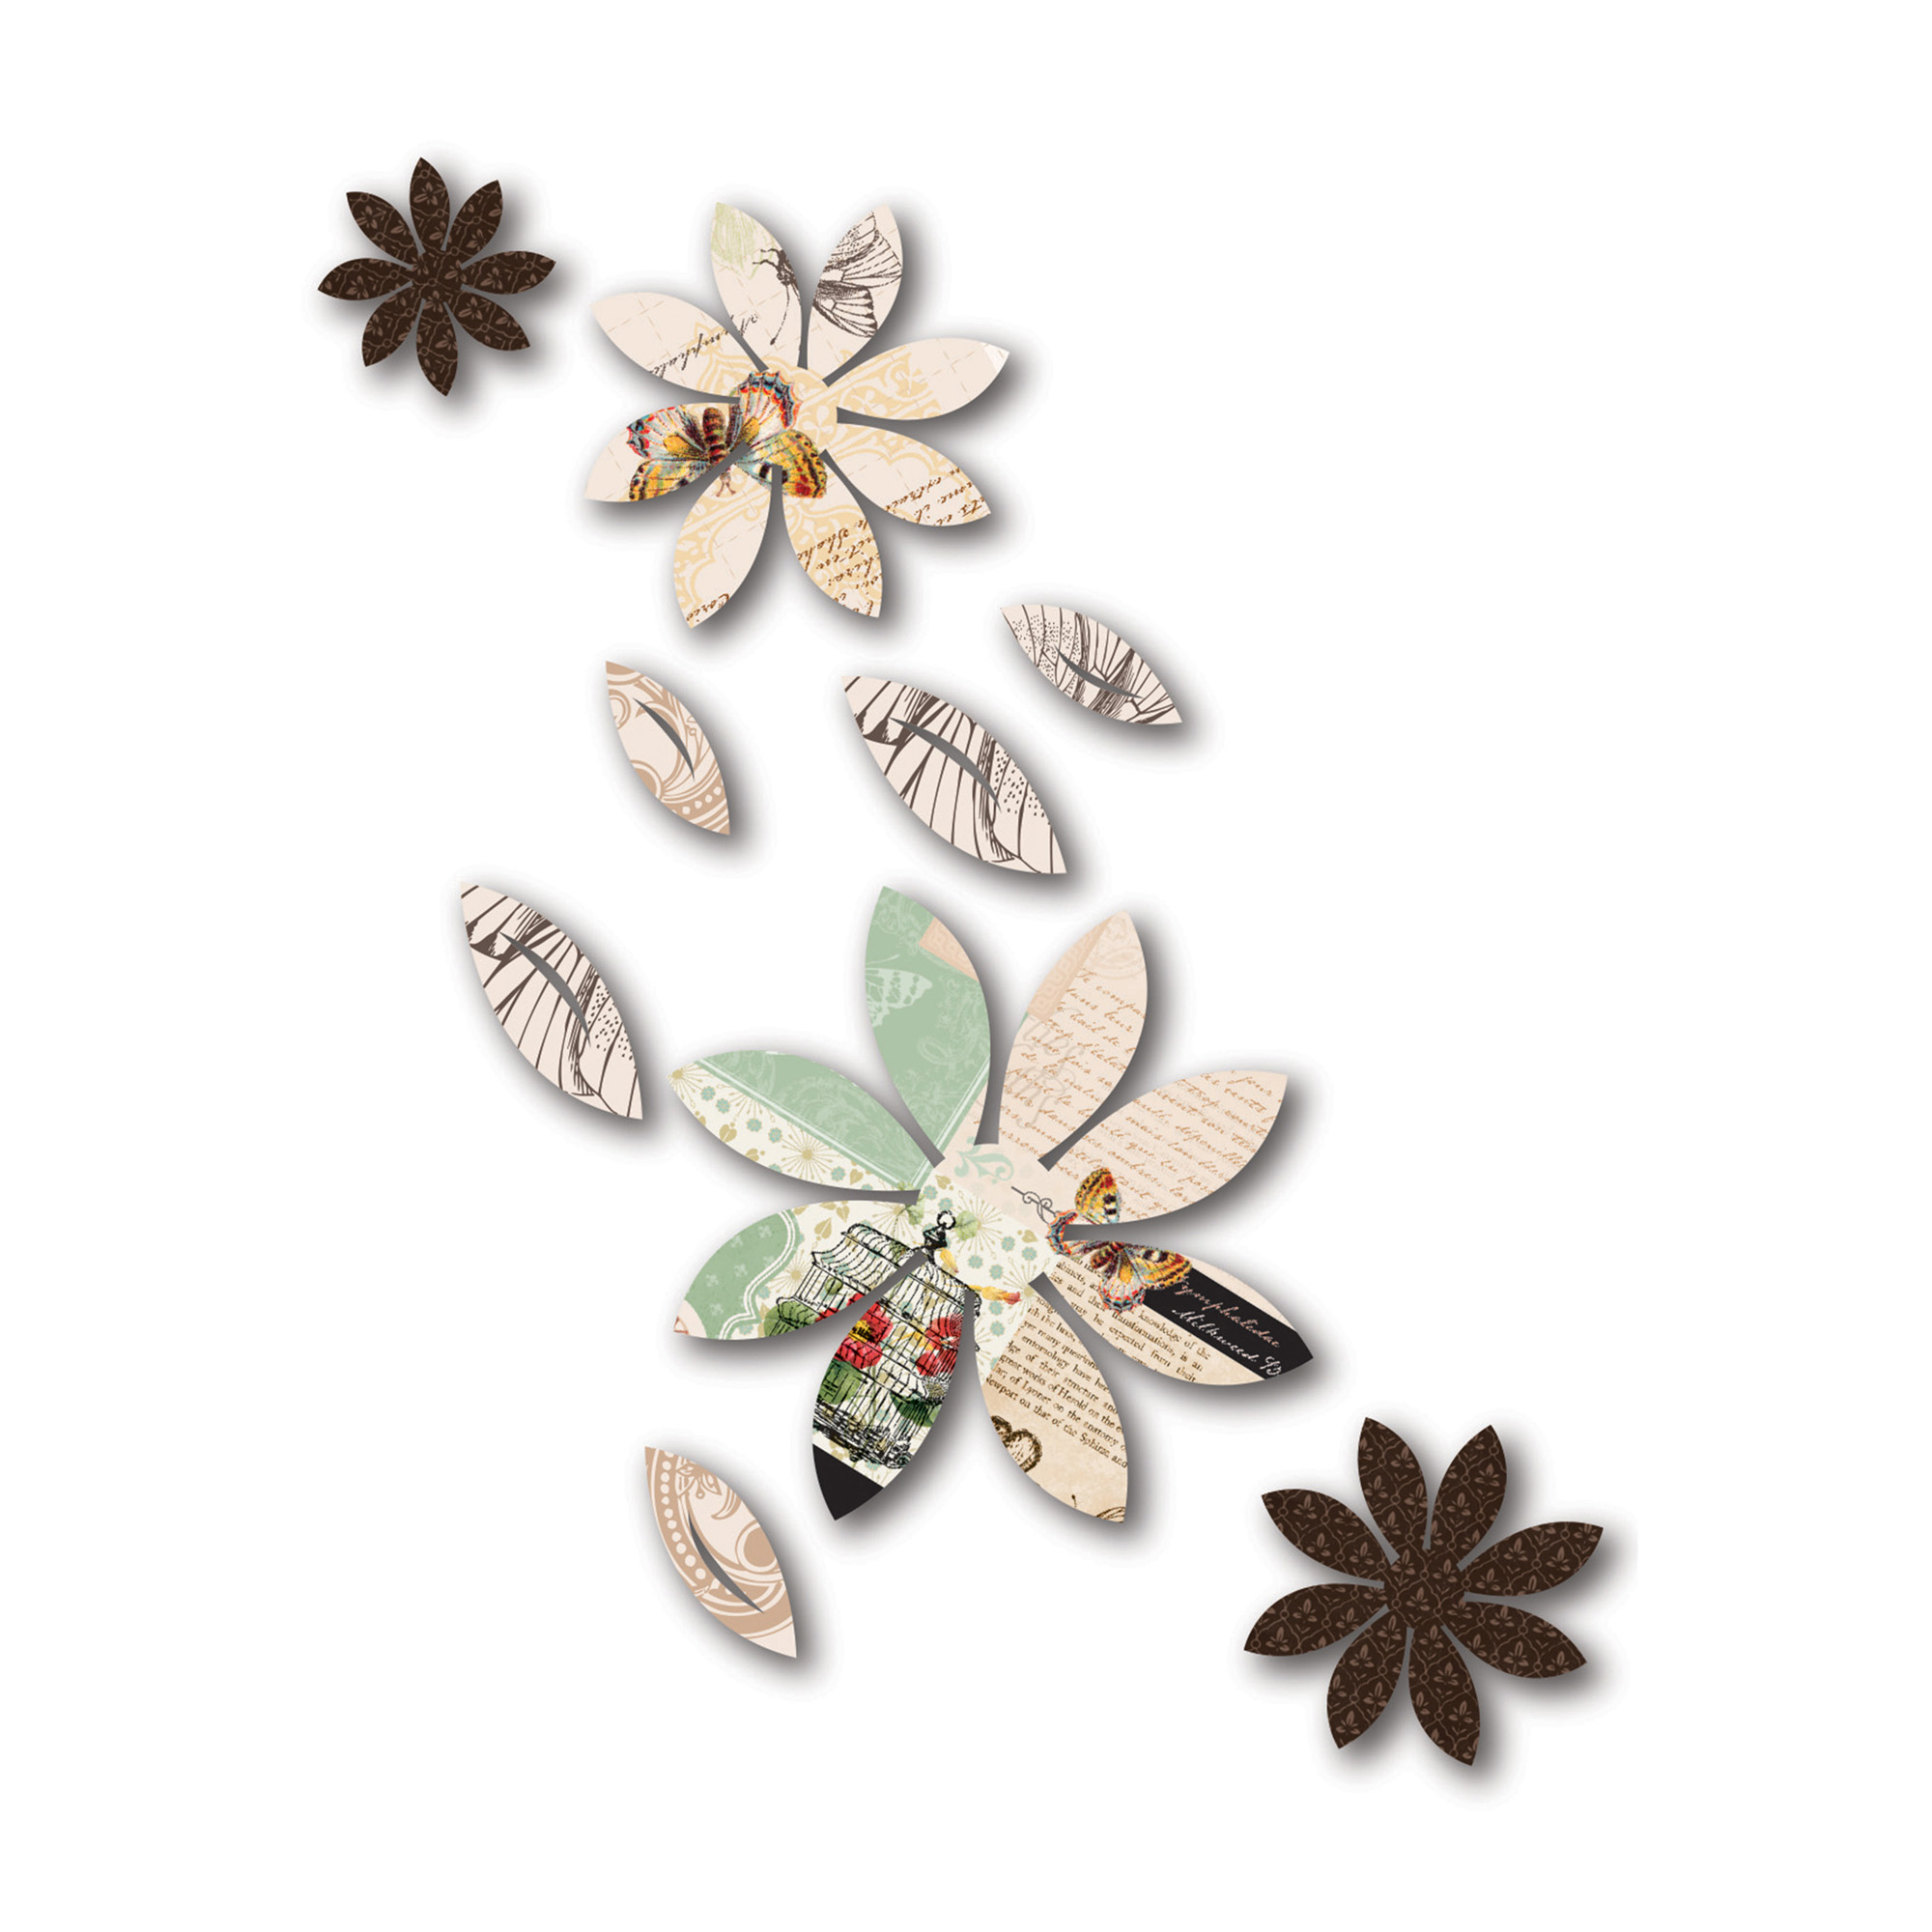 3D Wall Decor Brown Flowers With Mariposa Print, 9-Piece in Mariposa 9 Piece Wall Decor (Image 4 of 30)